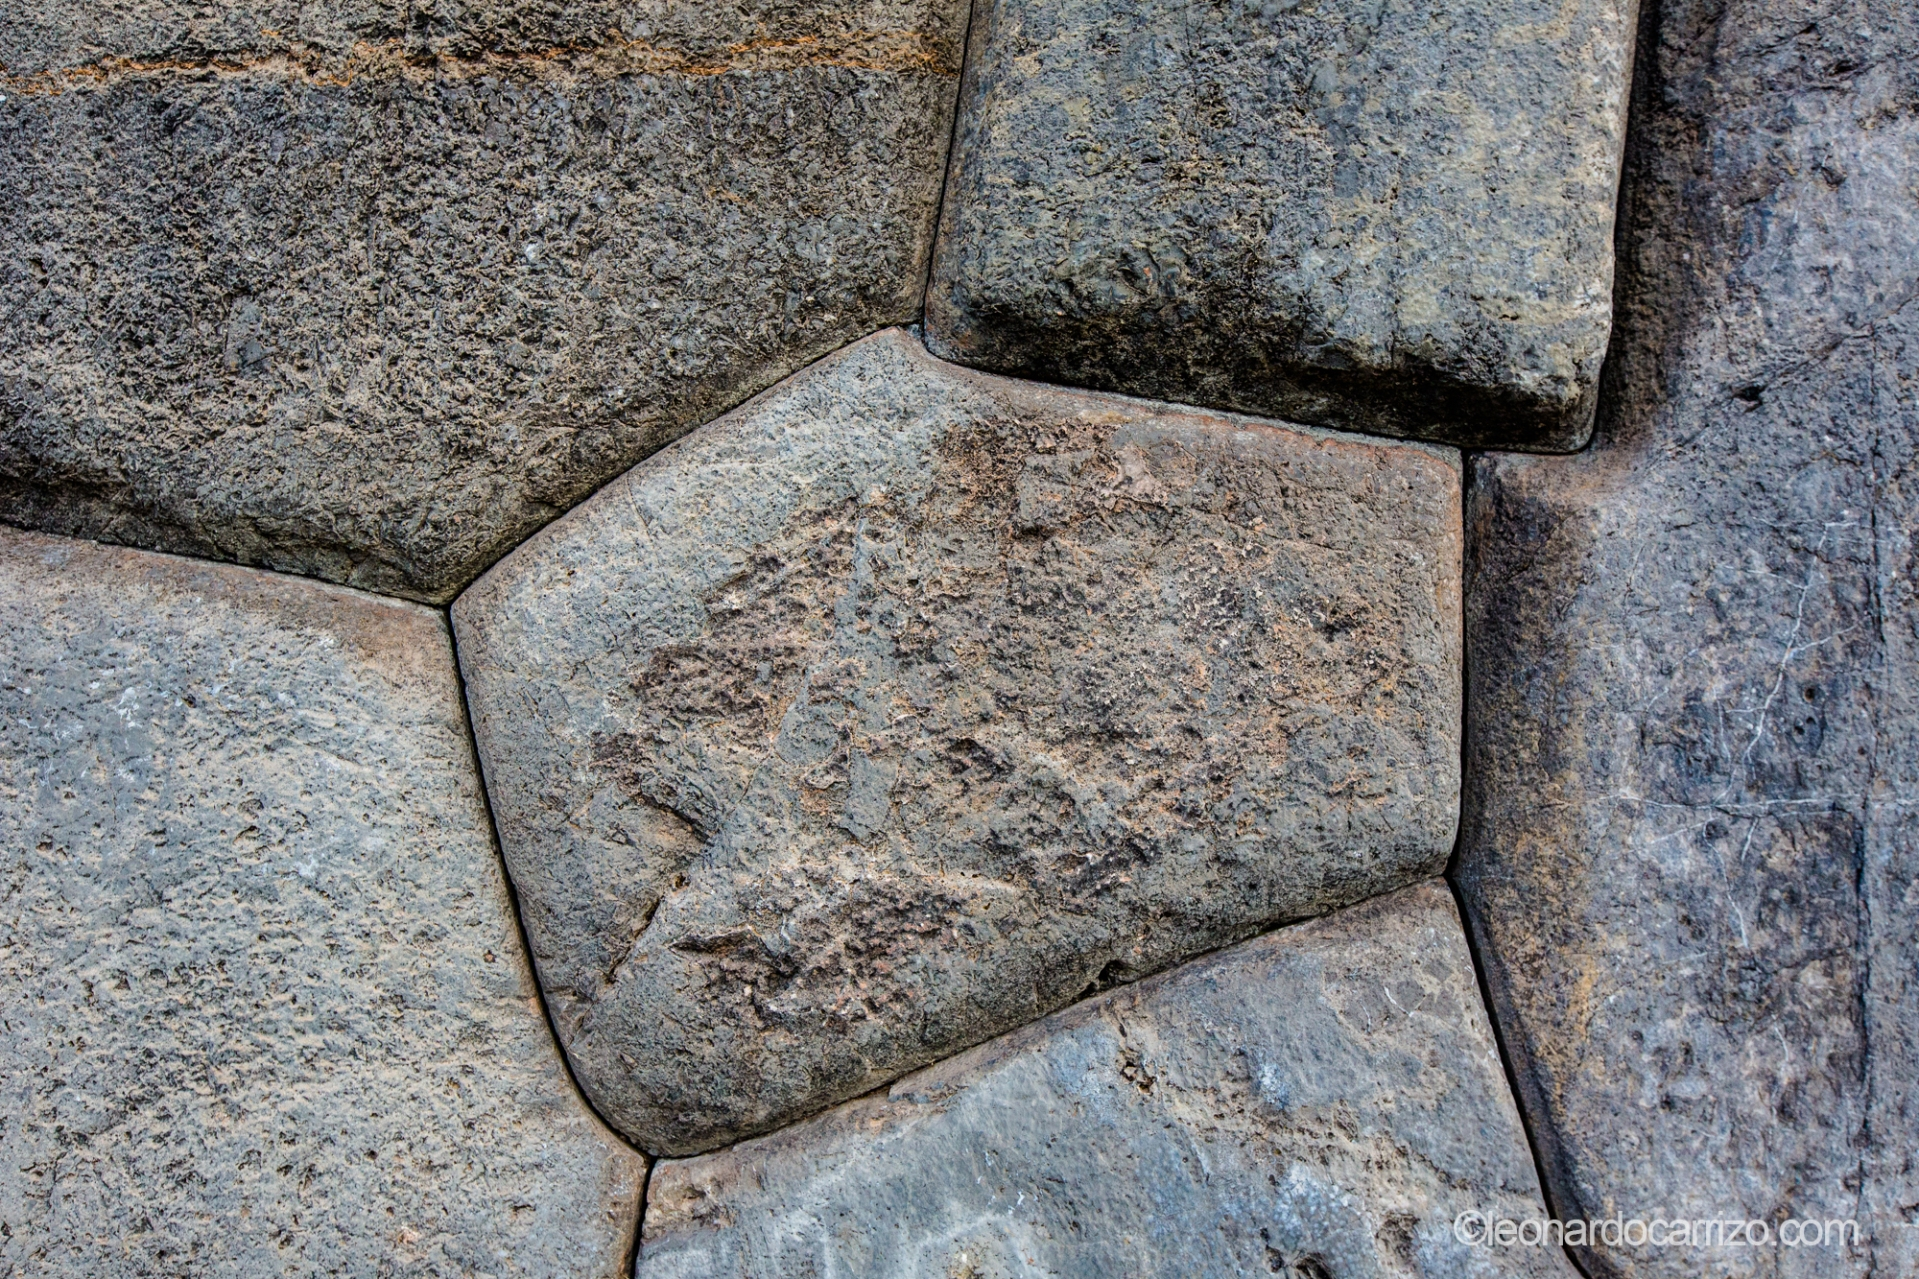 Sacsayhuaman archiological site, Cusco, Peru (photo by Leonardo Carrizo)